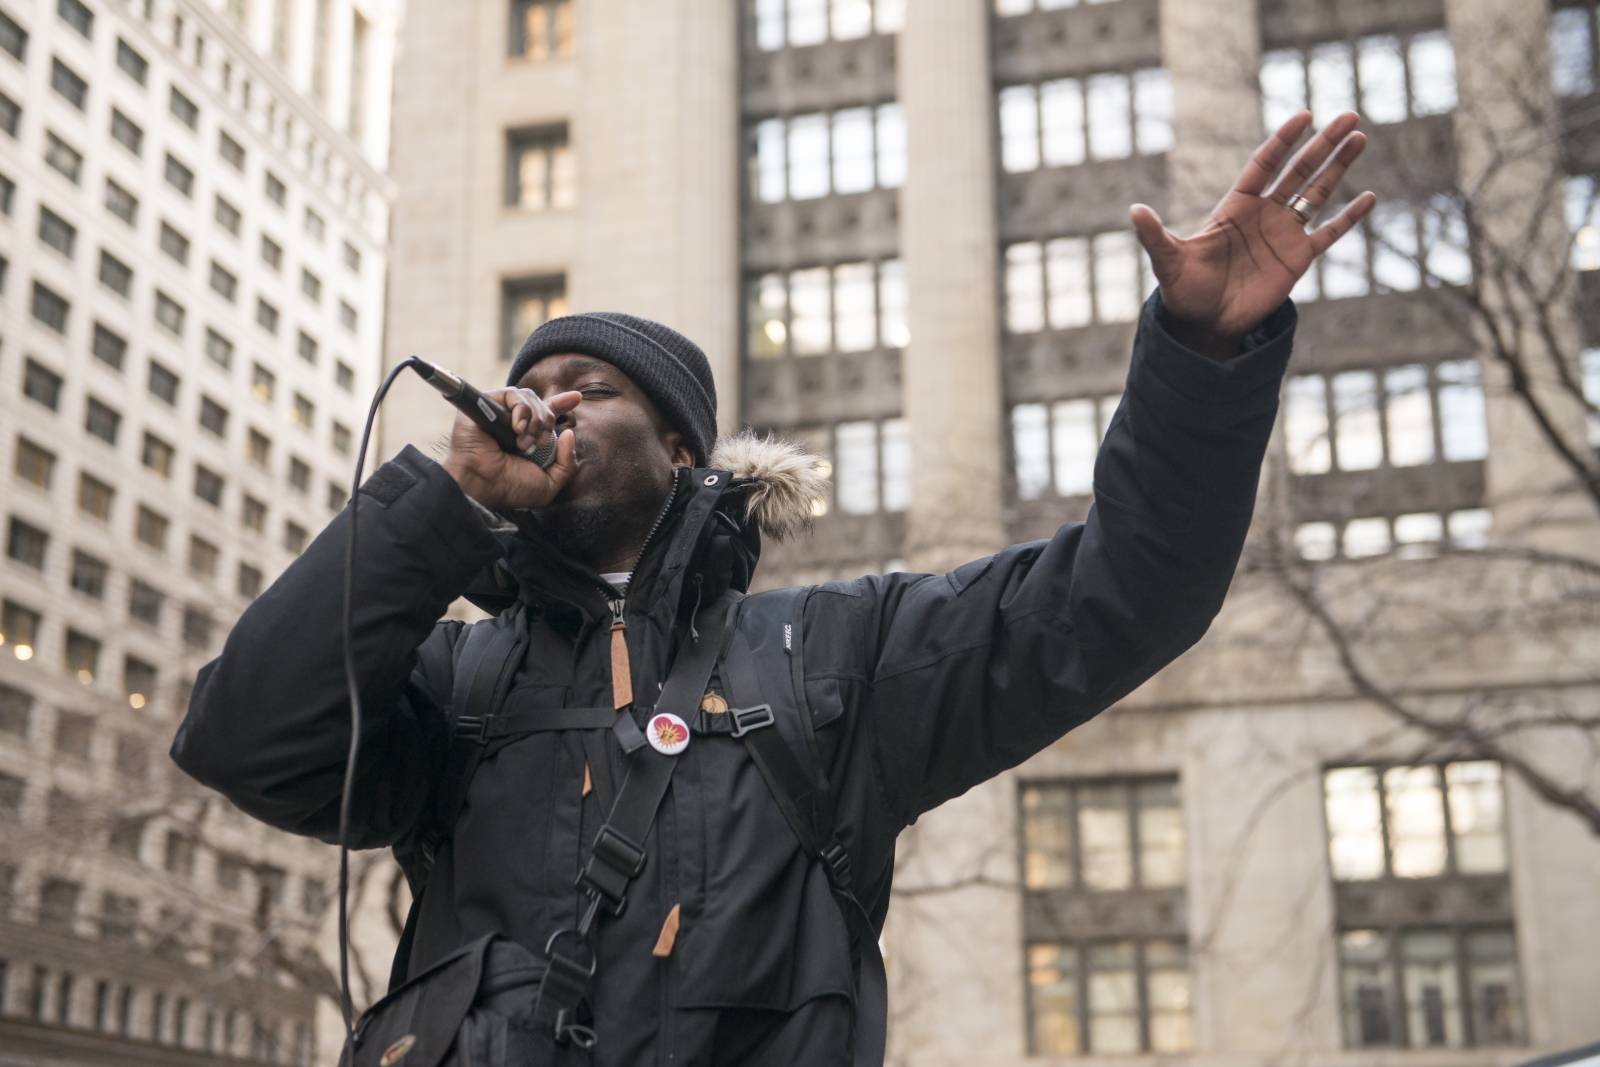 Photos from MLK50th rally today in Chicago